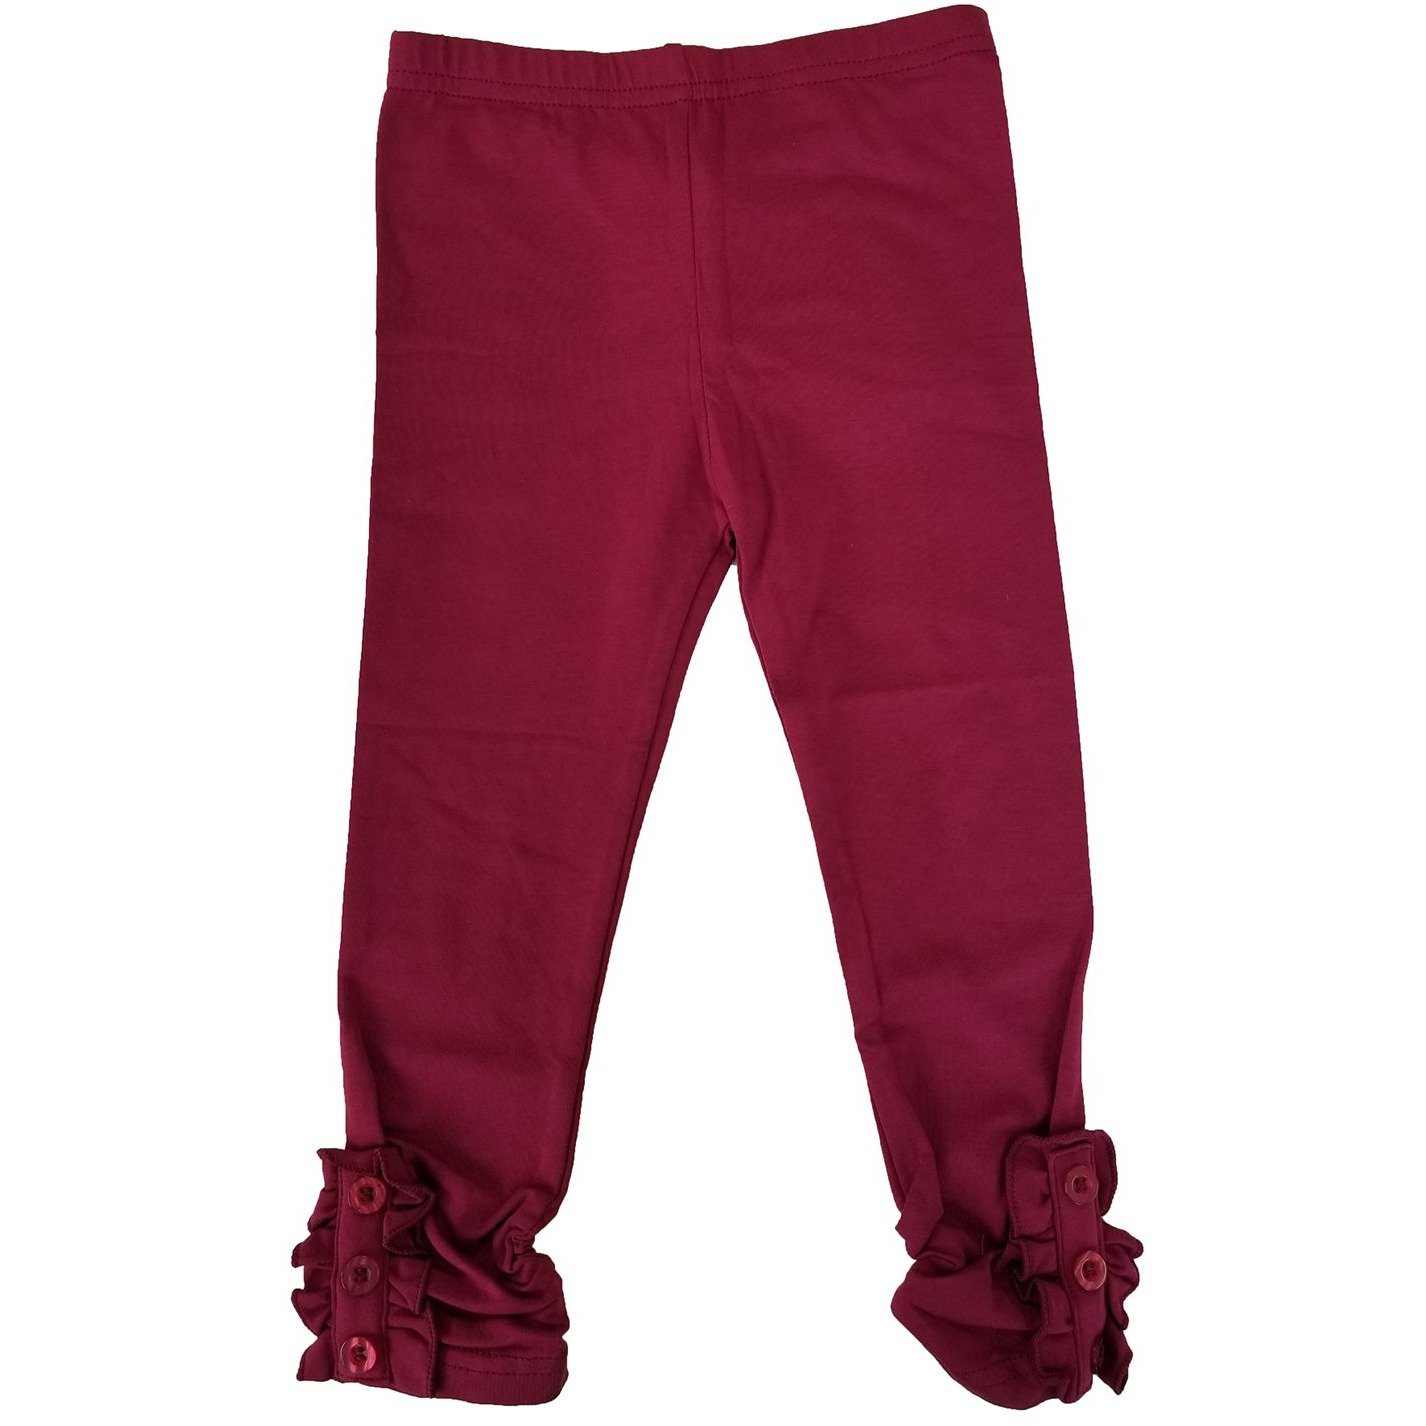 MJ Matches (Sept.) - Girls Button Ruffle Pants PRE-ORDER